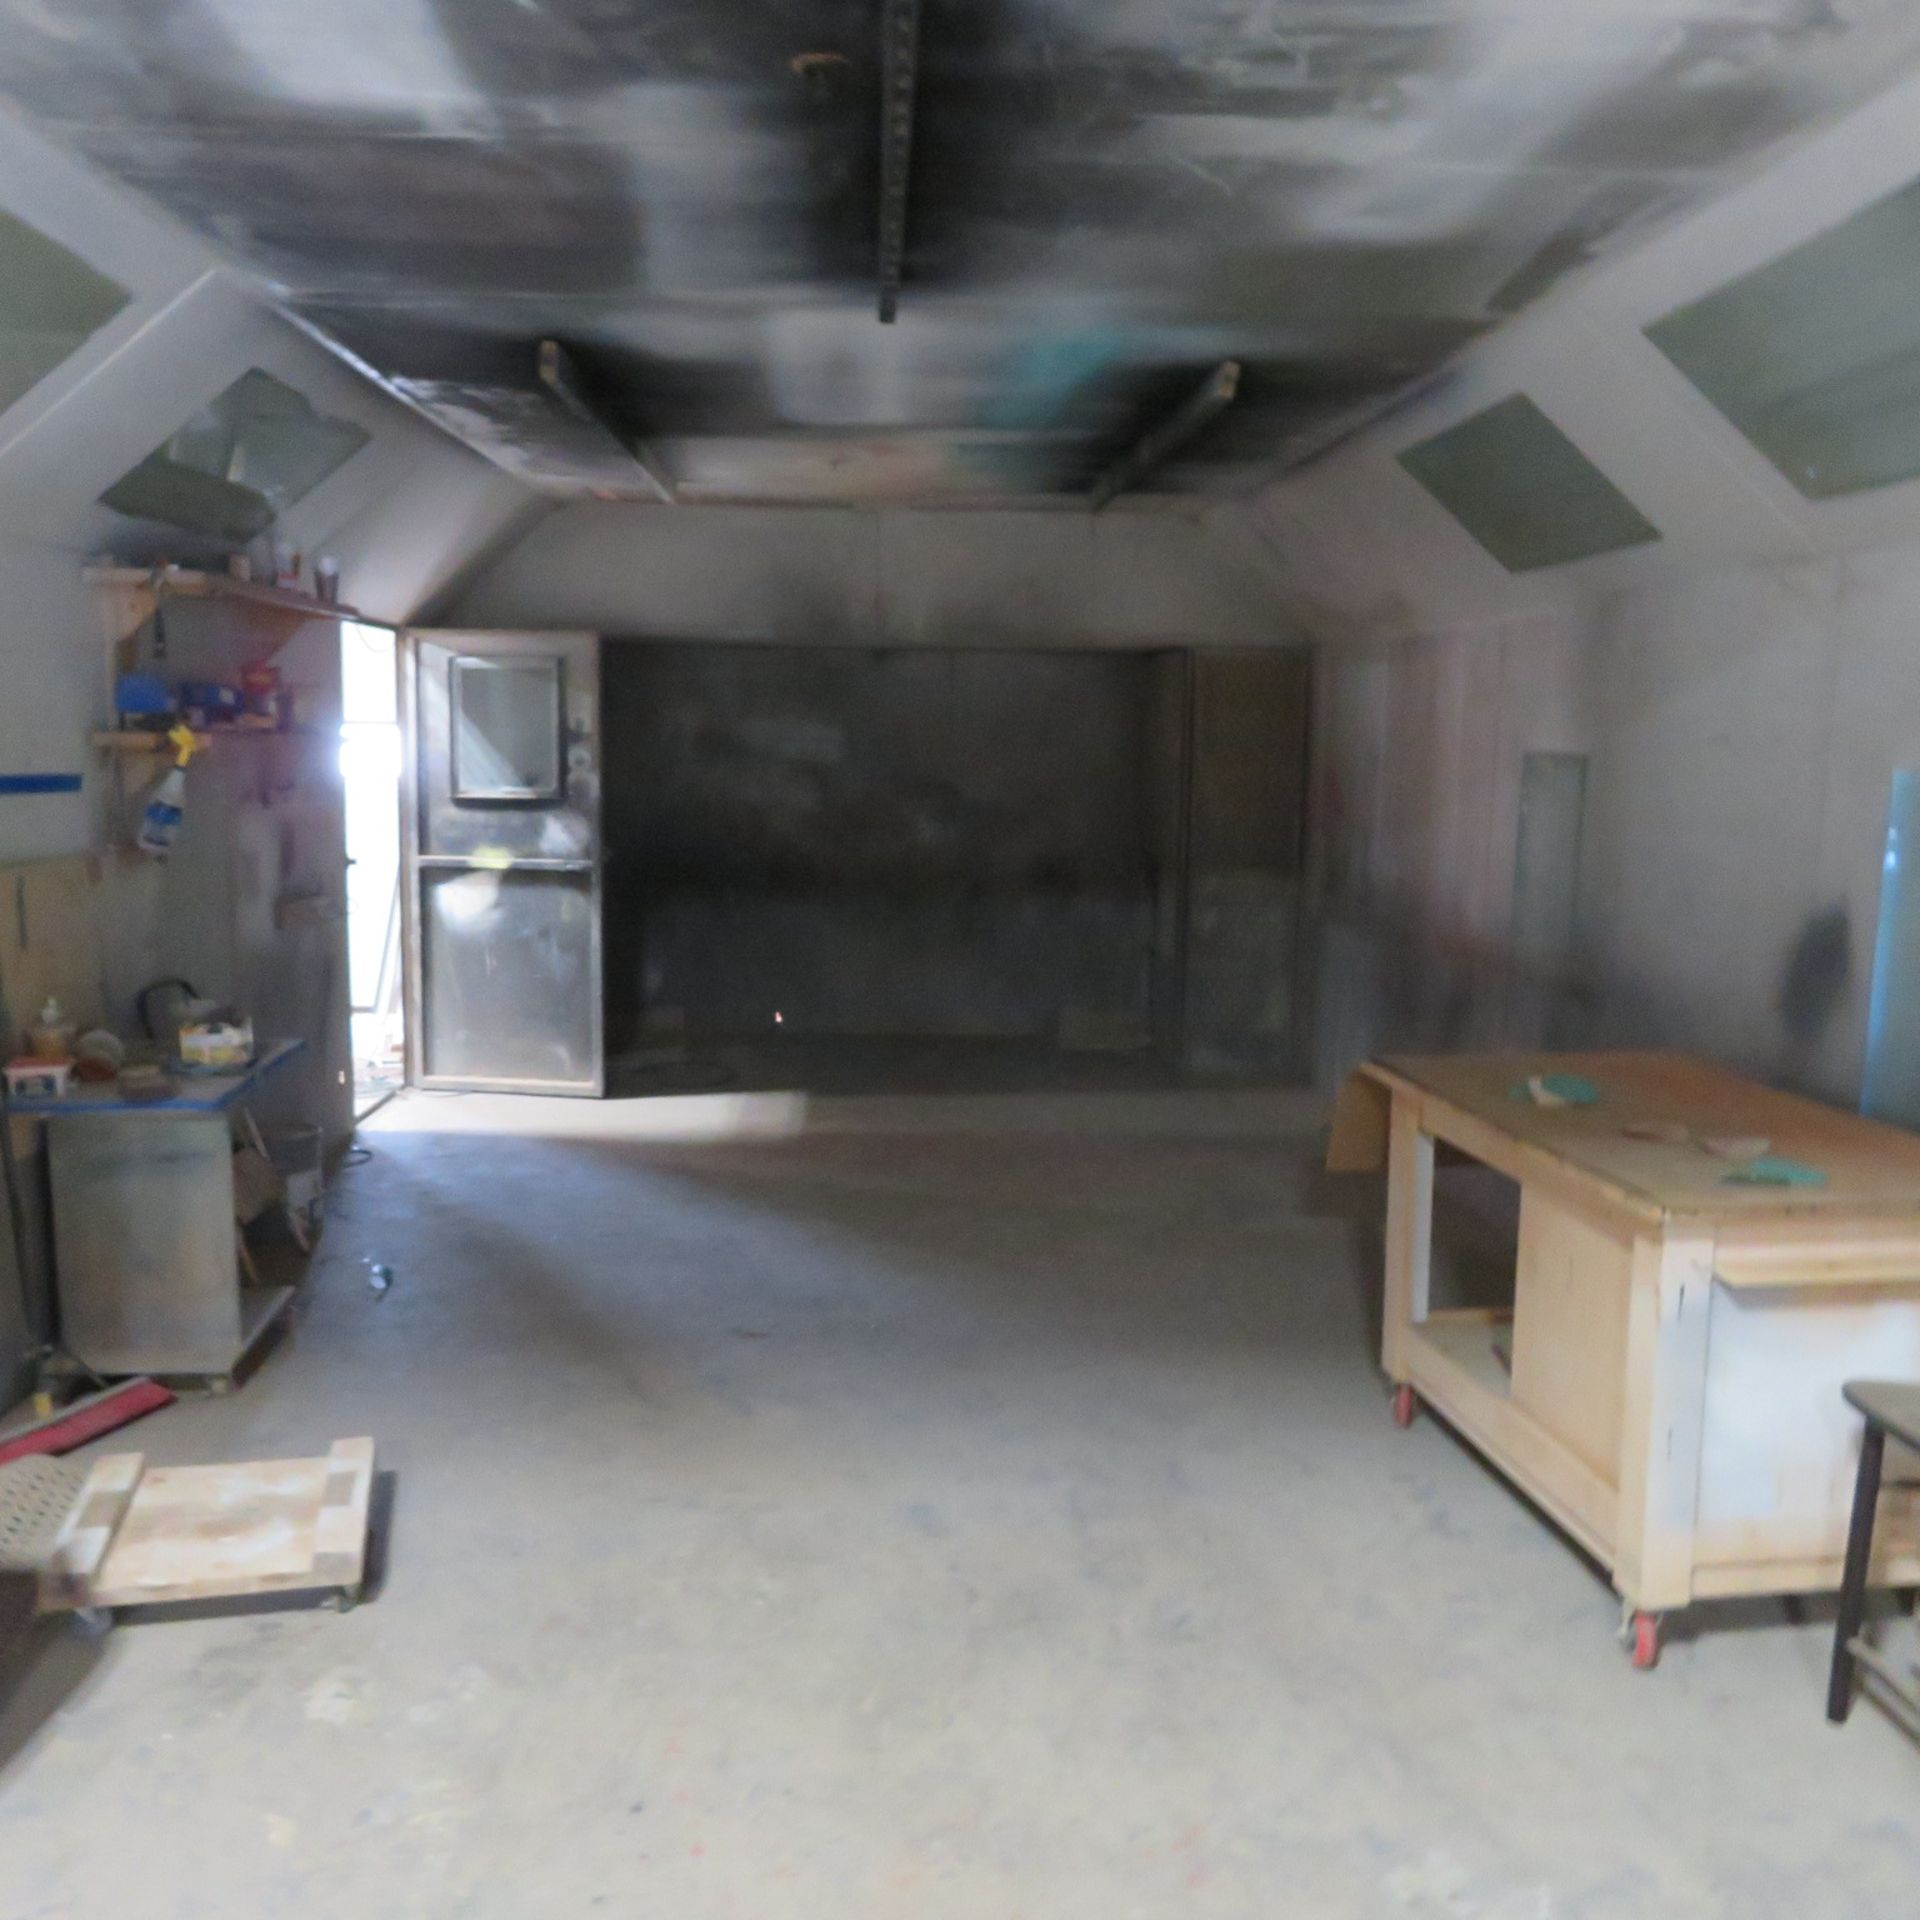 Lot 15 - Approx. 15' x 13' Spray Booth w/Filter System, Lights & Additional Panels (Must be disconnected by